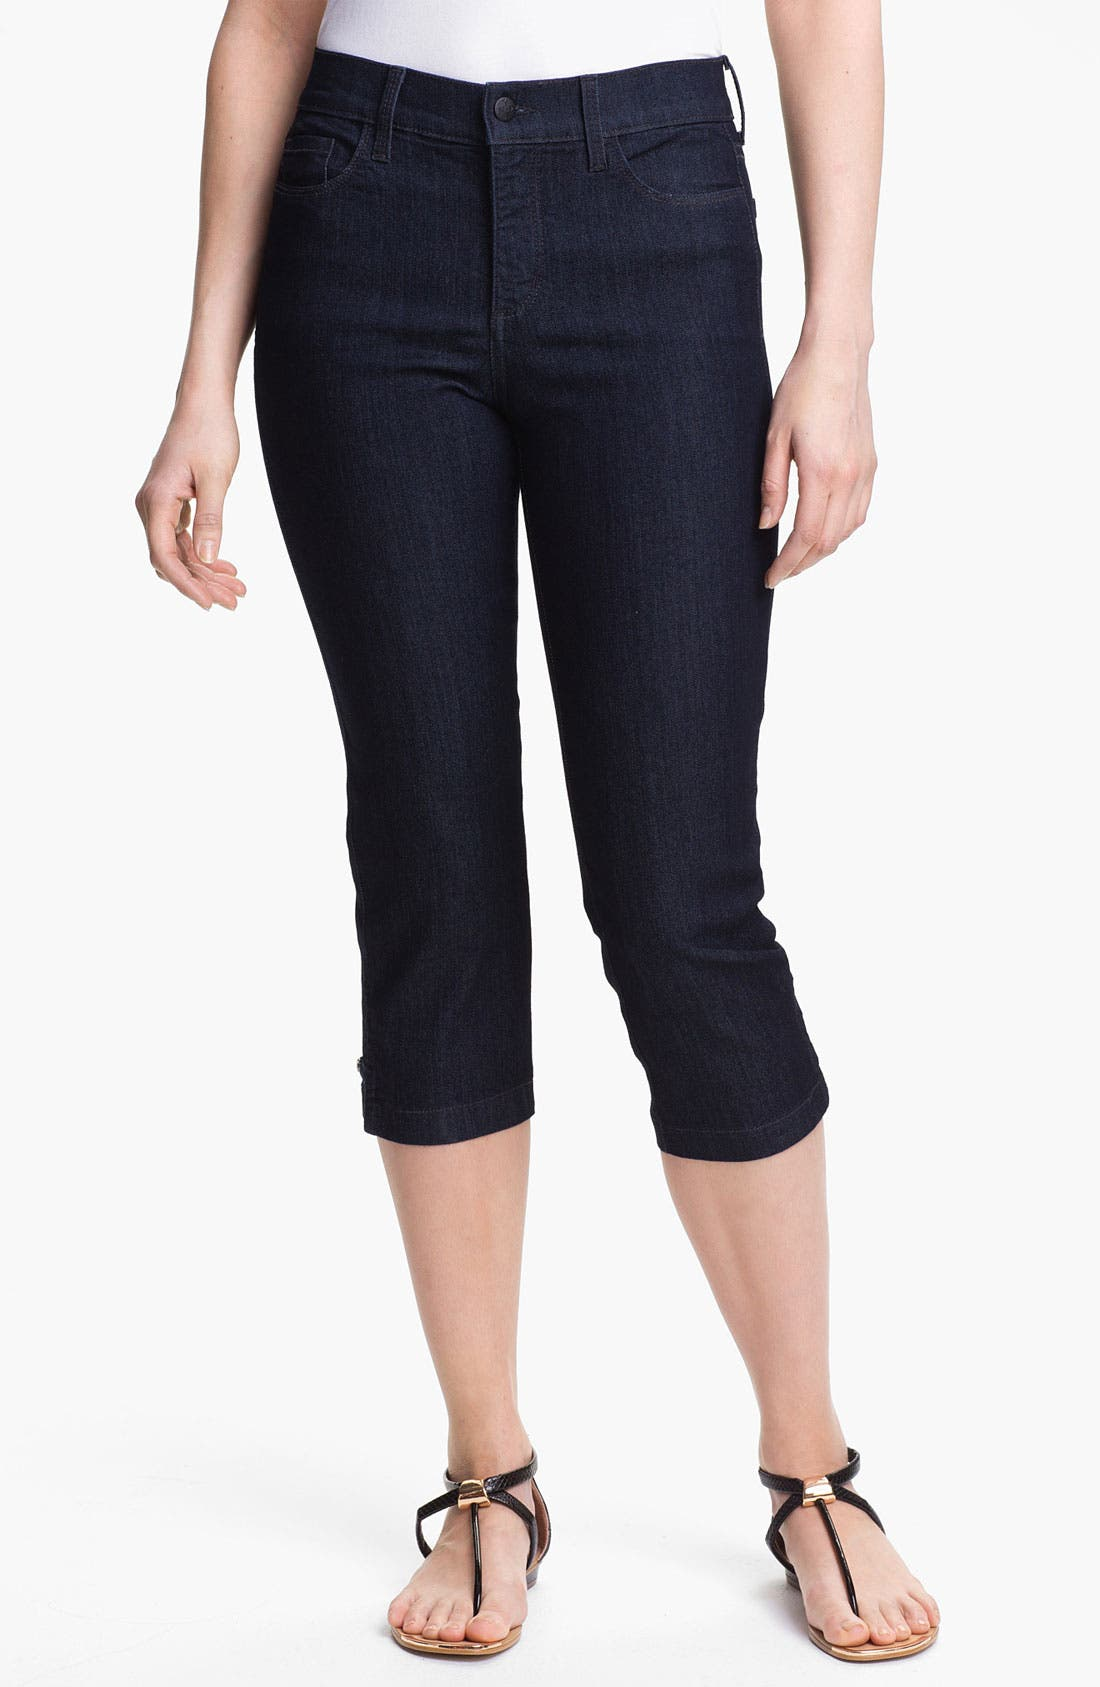 Alternate Image 1 Selected - NYDJ 'Winona' Crop Stretch Jeans